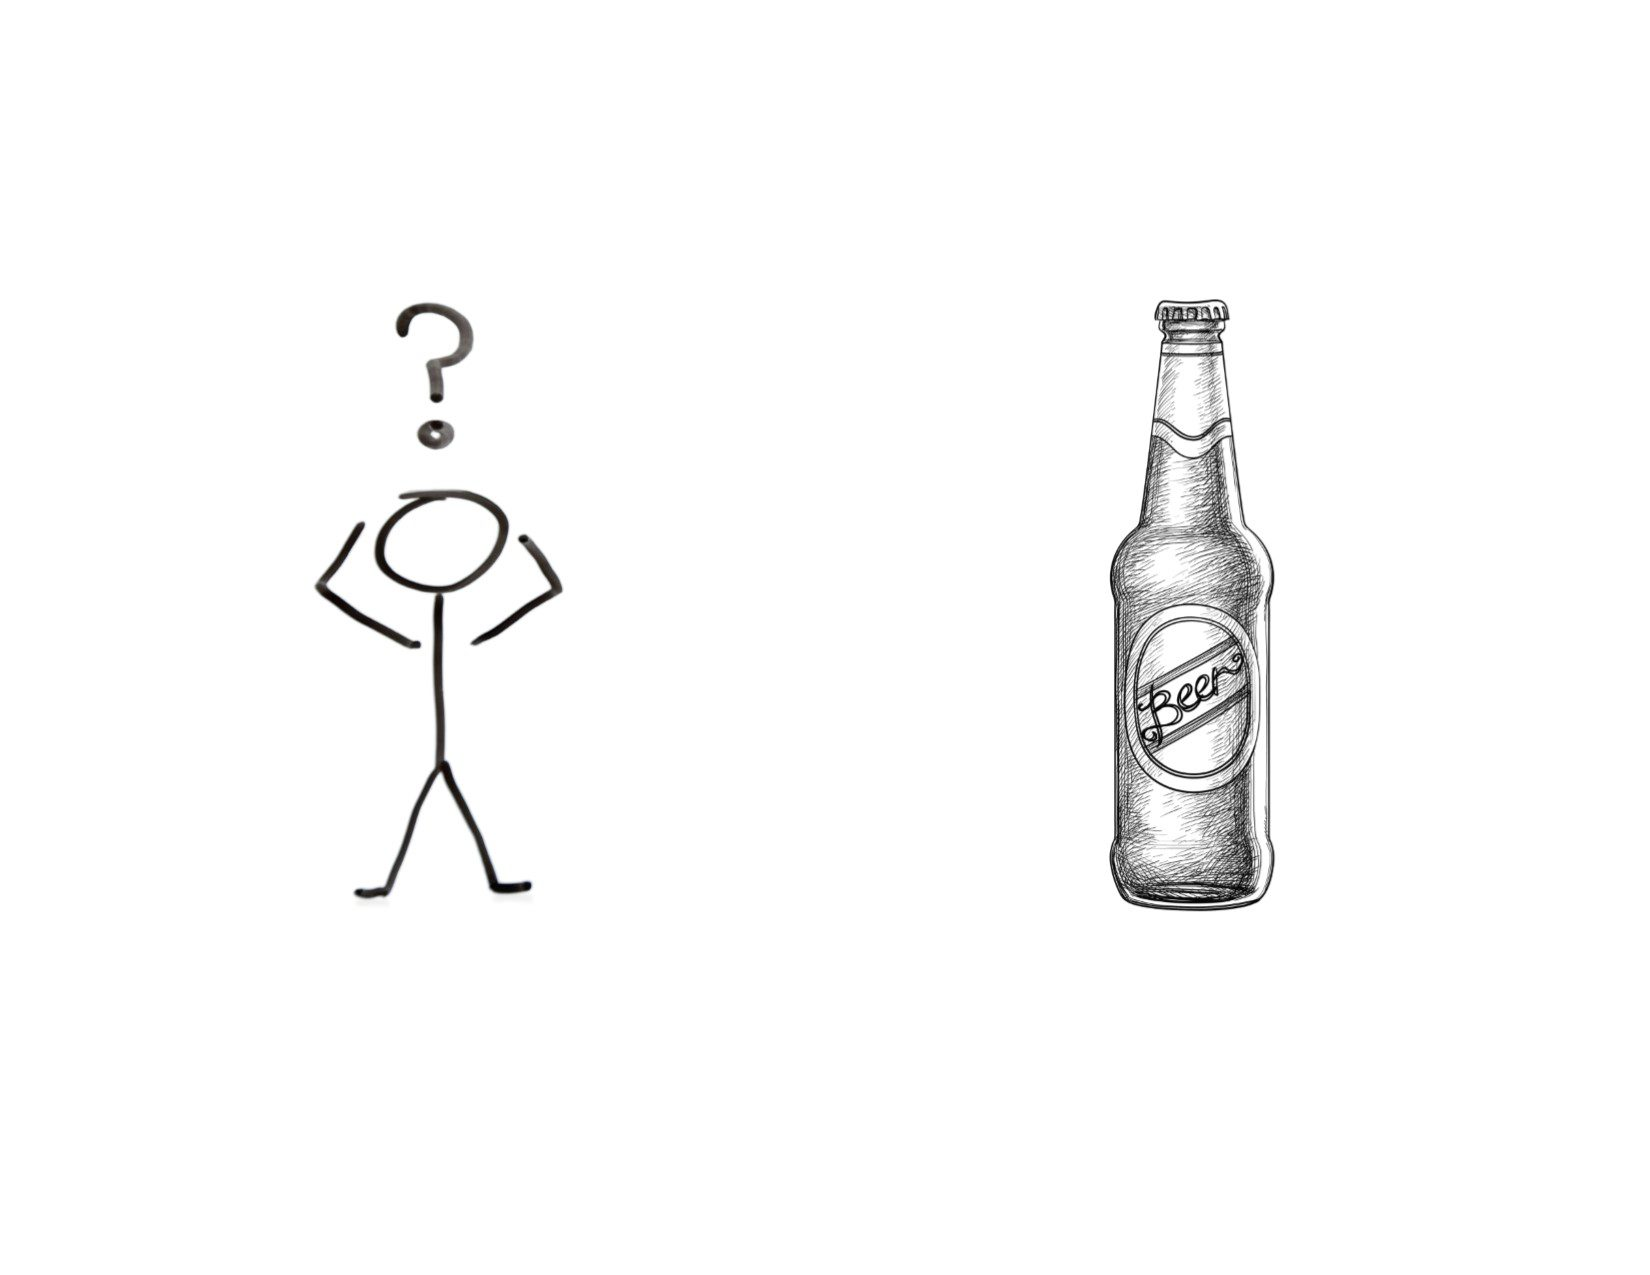 stick figure looking at a drawn beer bottle